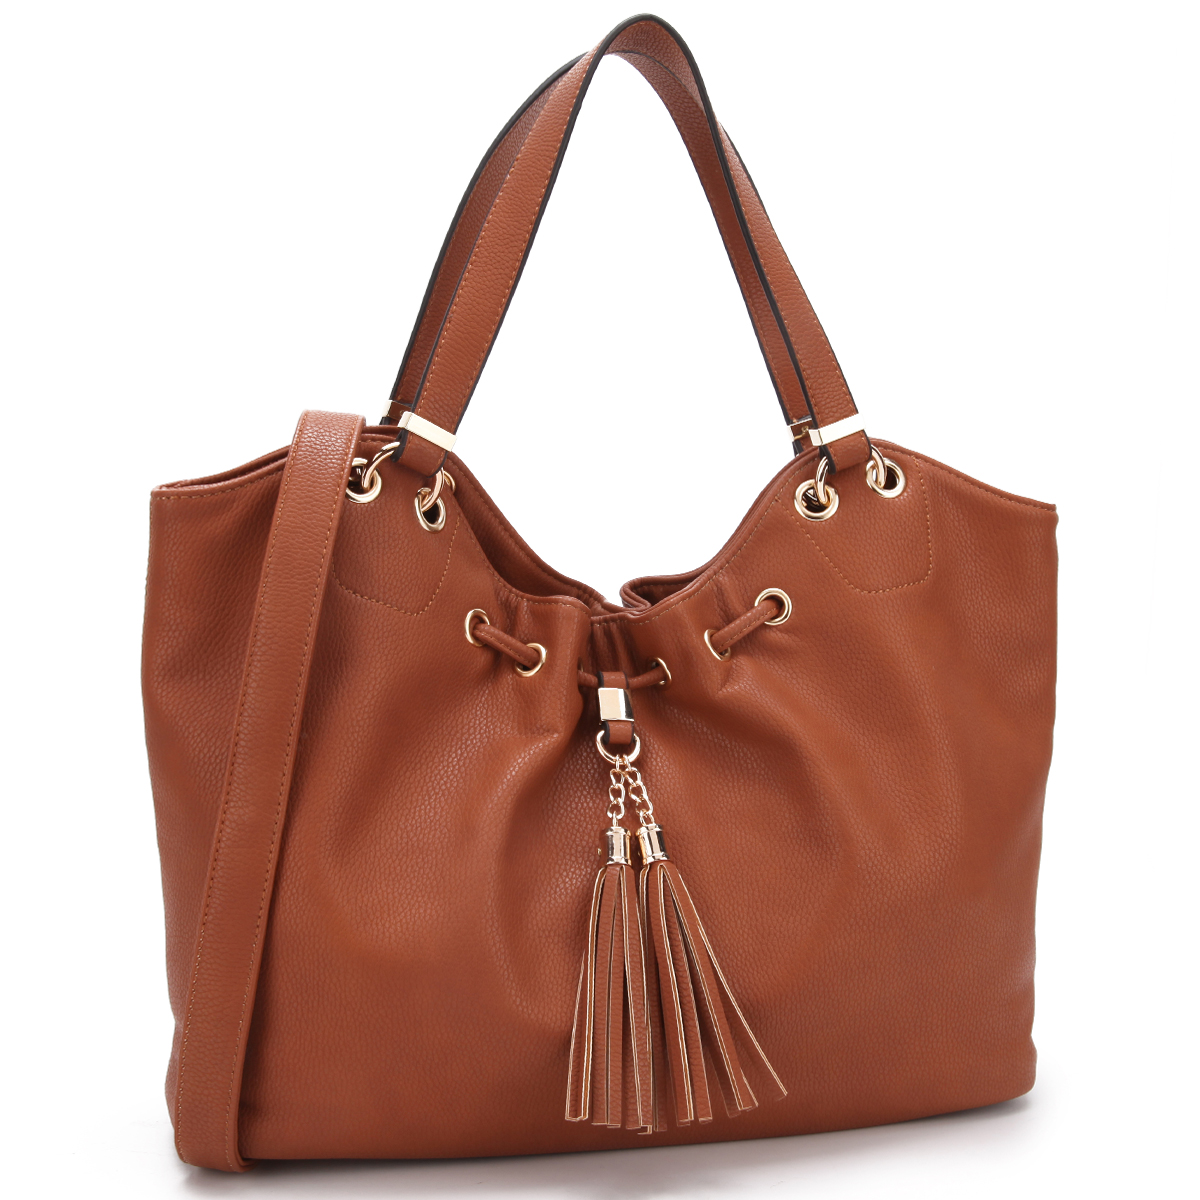 Dasein Faux Leather Satchel Drawstring Design with Fringe Tassel